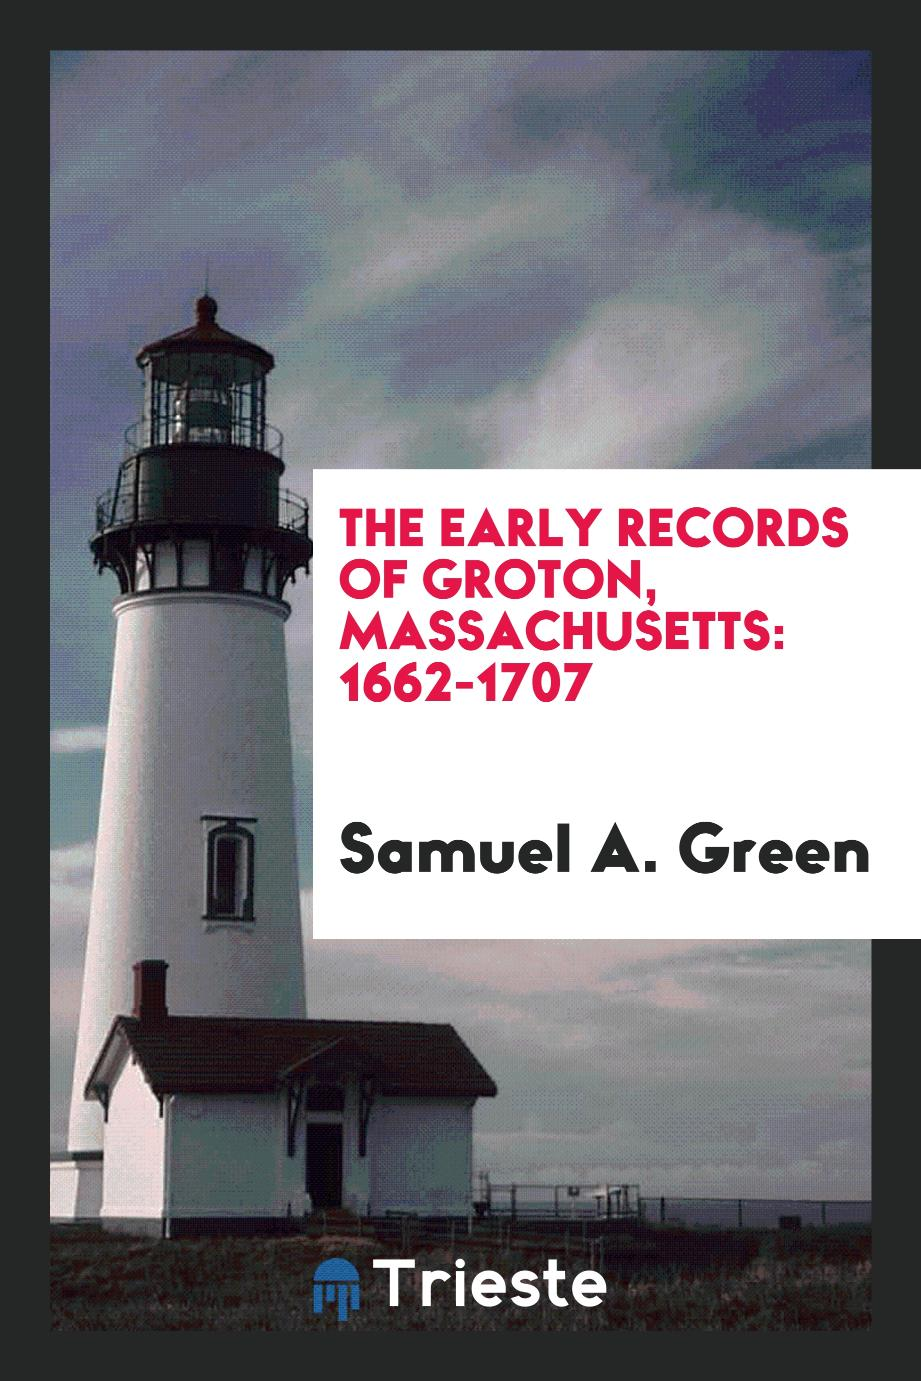 The Early Records of Groton, Massachusetts: 1662-1707